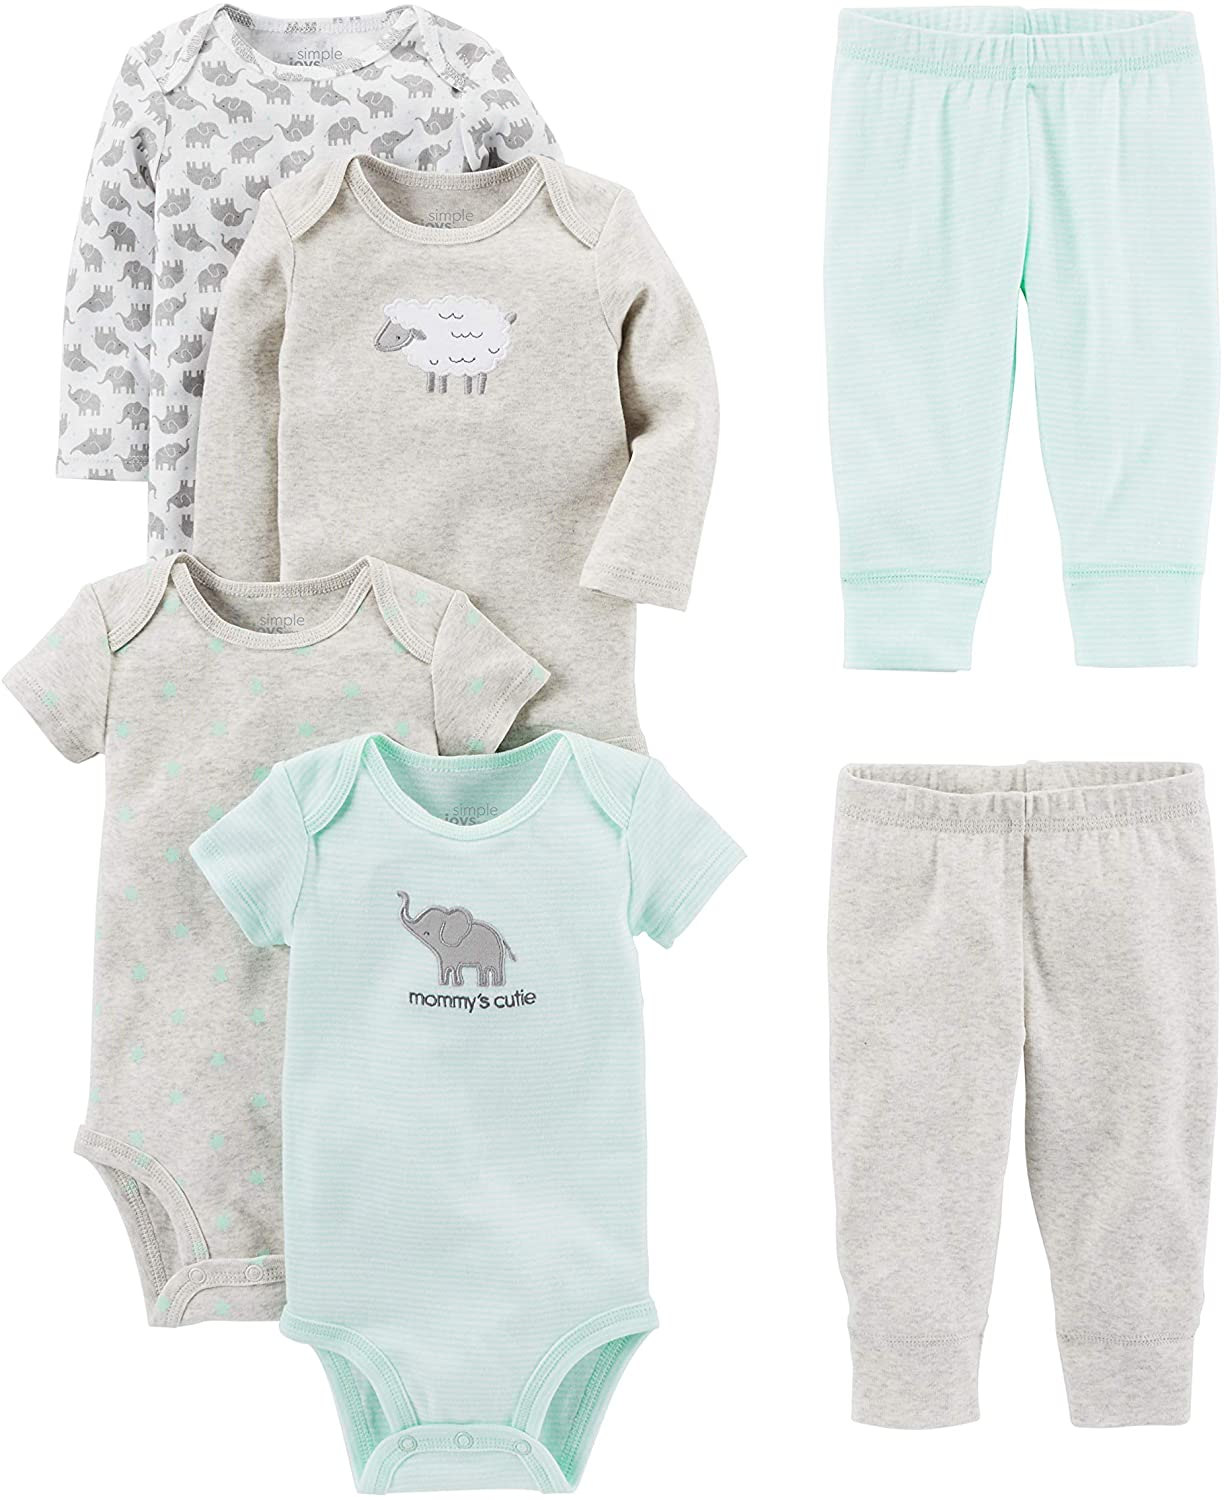 Simple Joys by Carters Baby Jungen Strampler kurz/ärmlig 6er Pack